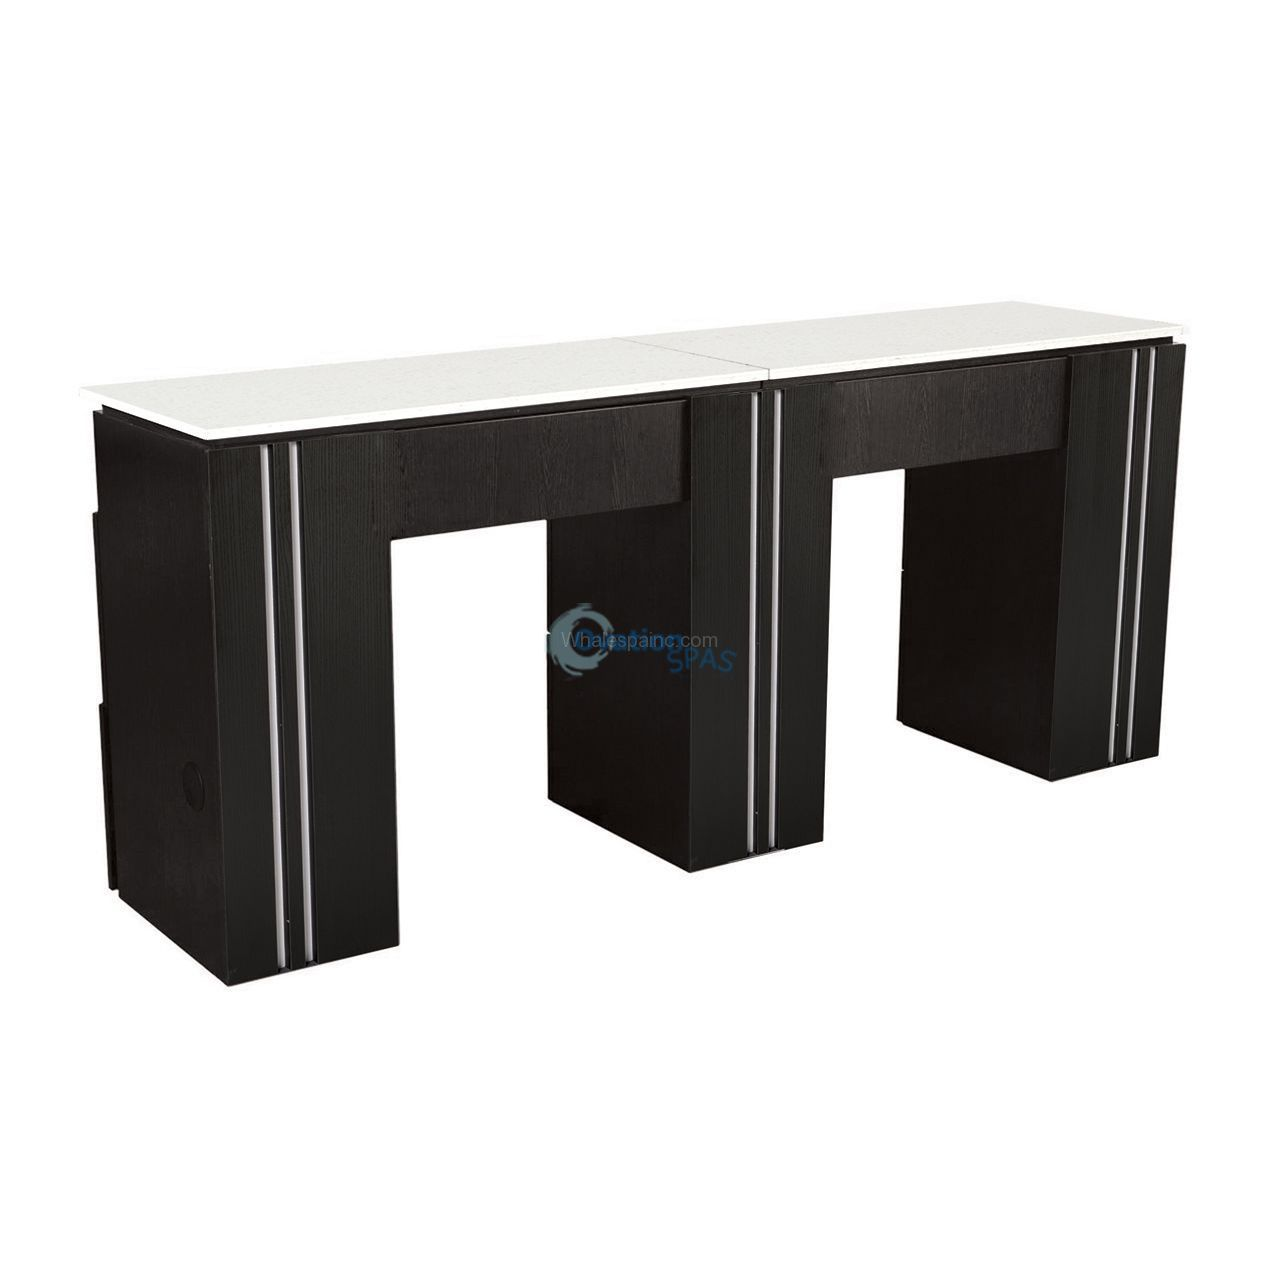 NM906 Double Manicure Table - Black / White